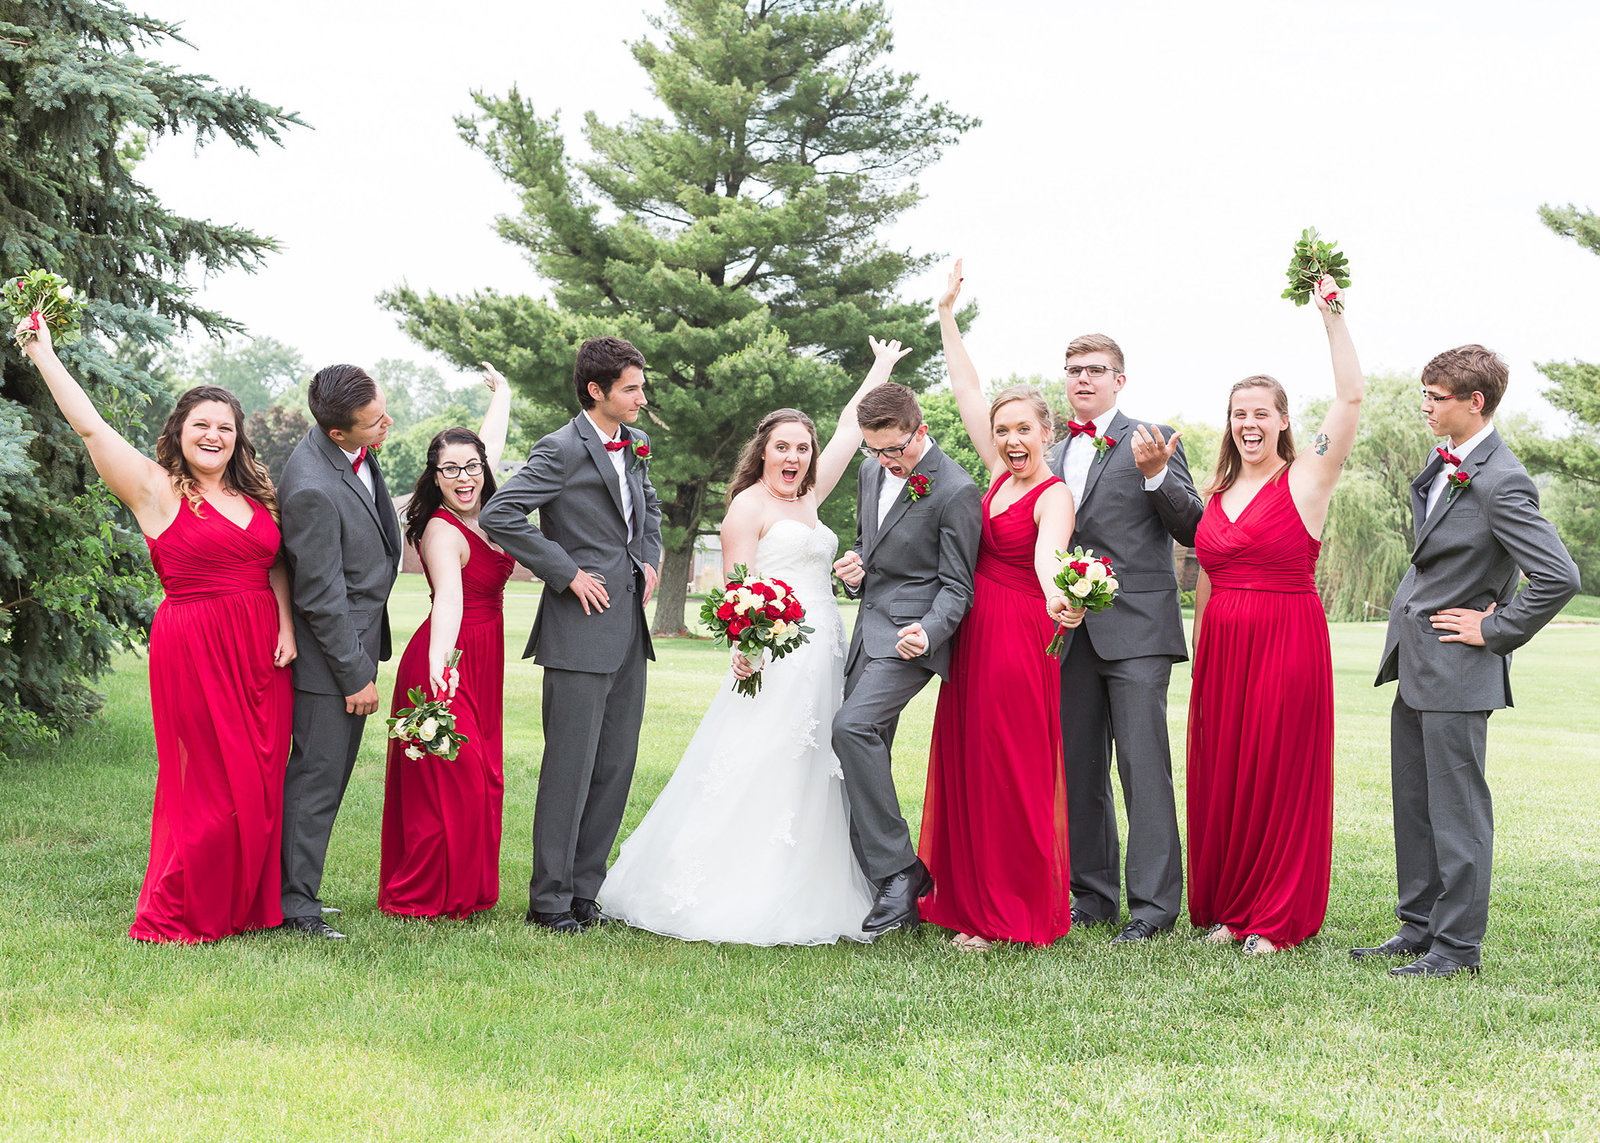 Indianapolis  Valle Vista wedding  bridal party  cheering red and charcoal photo by Simply Seeking Photography